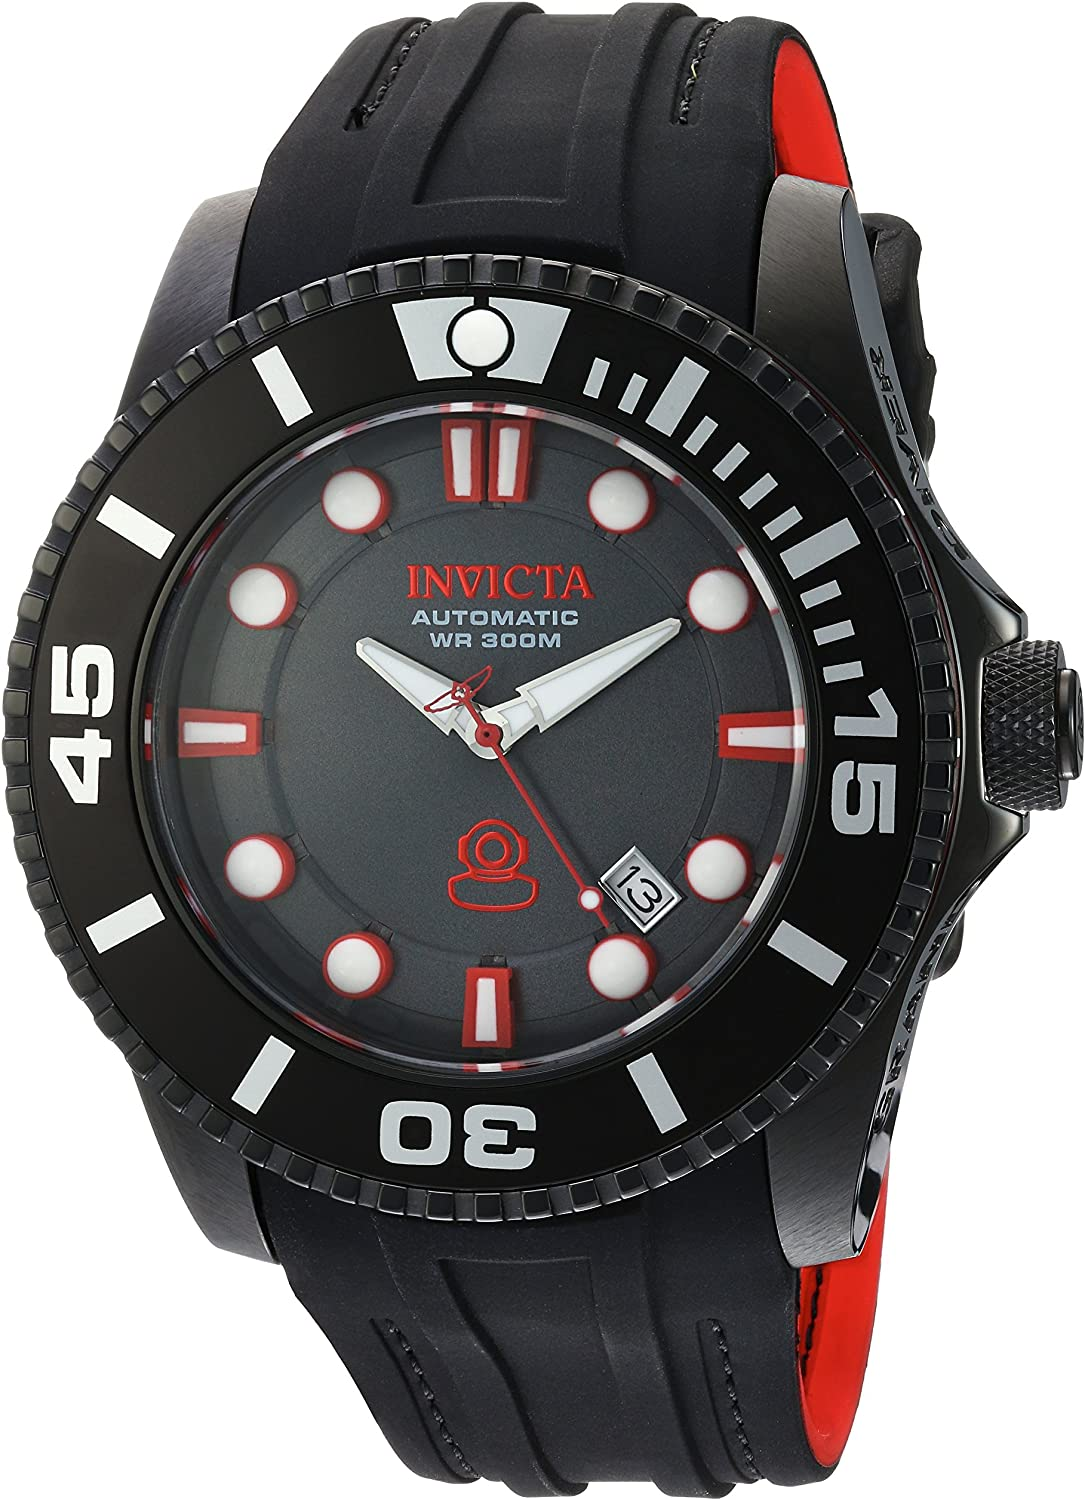 Invicta Men s Pro Diver Stainless Steel Automatic-self-Wind Diving Watch with Silicone Strap, Black, 25 Model 20205